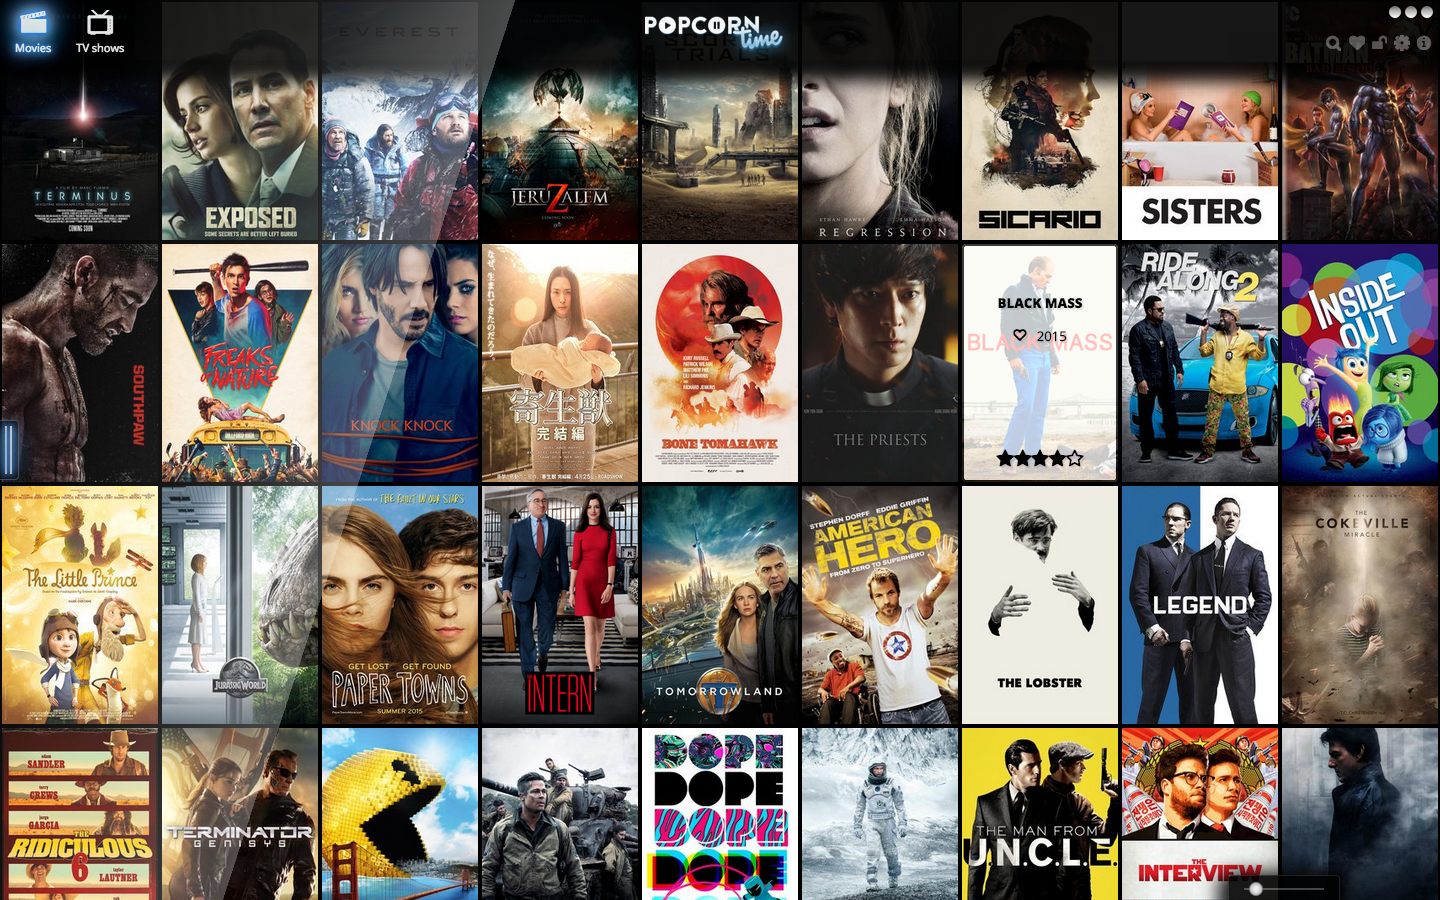 Download and install Popcorn Time 5.4 for MacOS X - Tutorial and Full Version Software